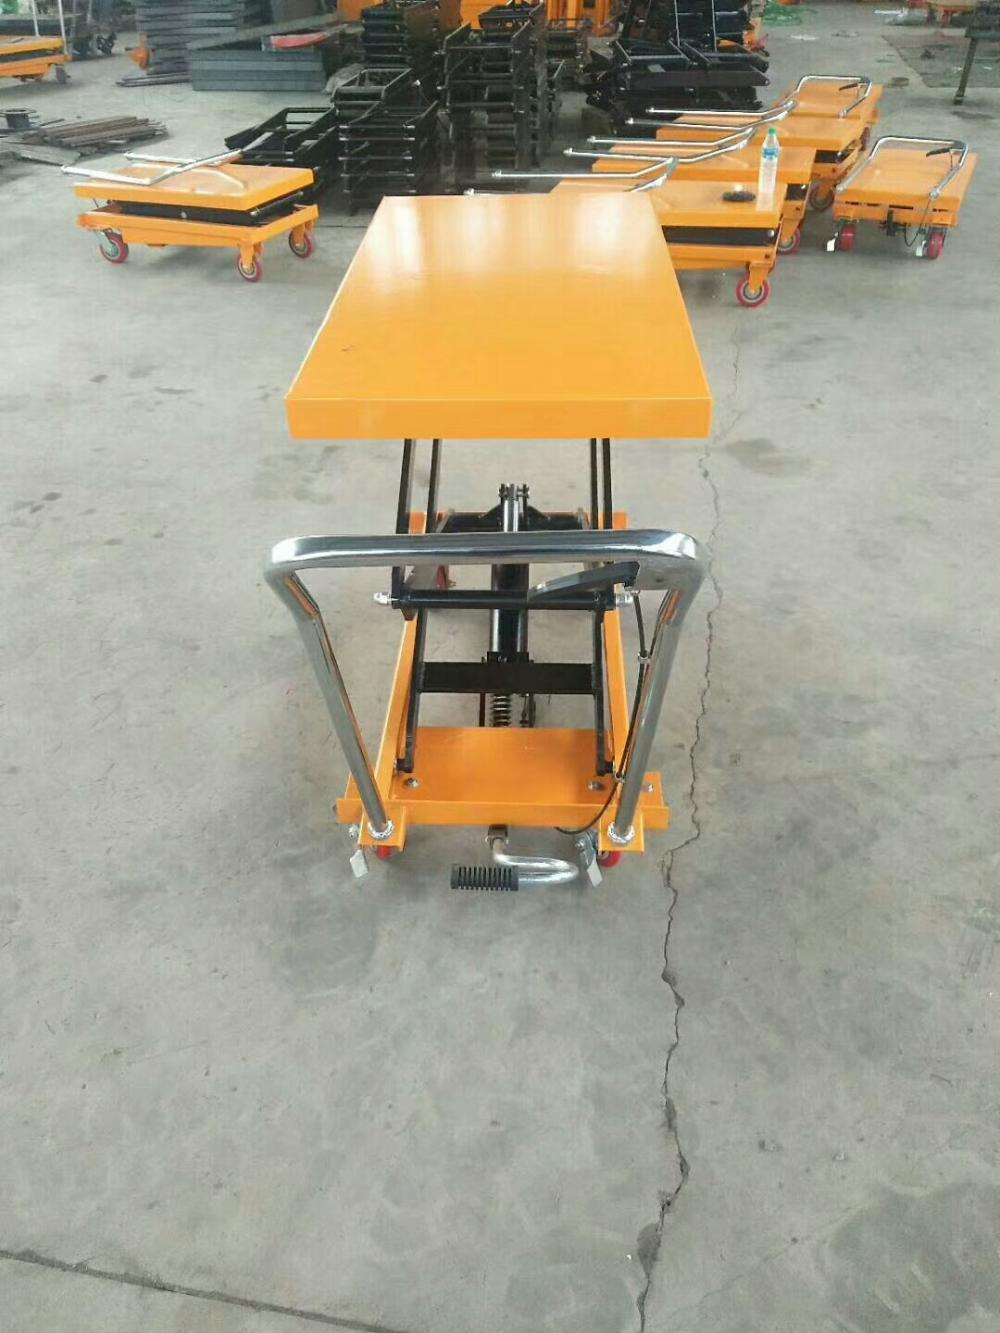 Manual Trolley Type 500kg Scissor Lift Table For Warehouse Cargo Loading